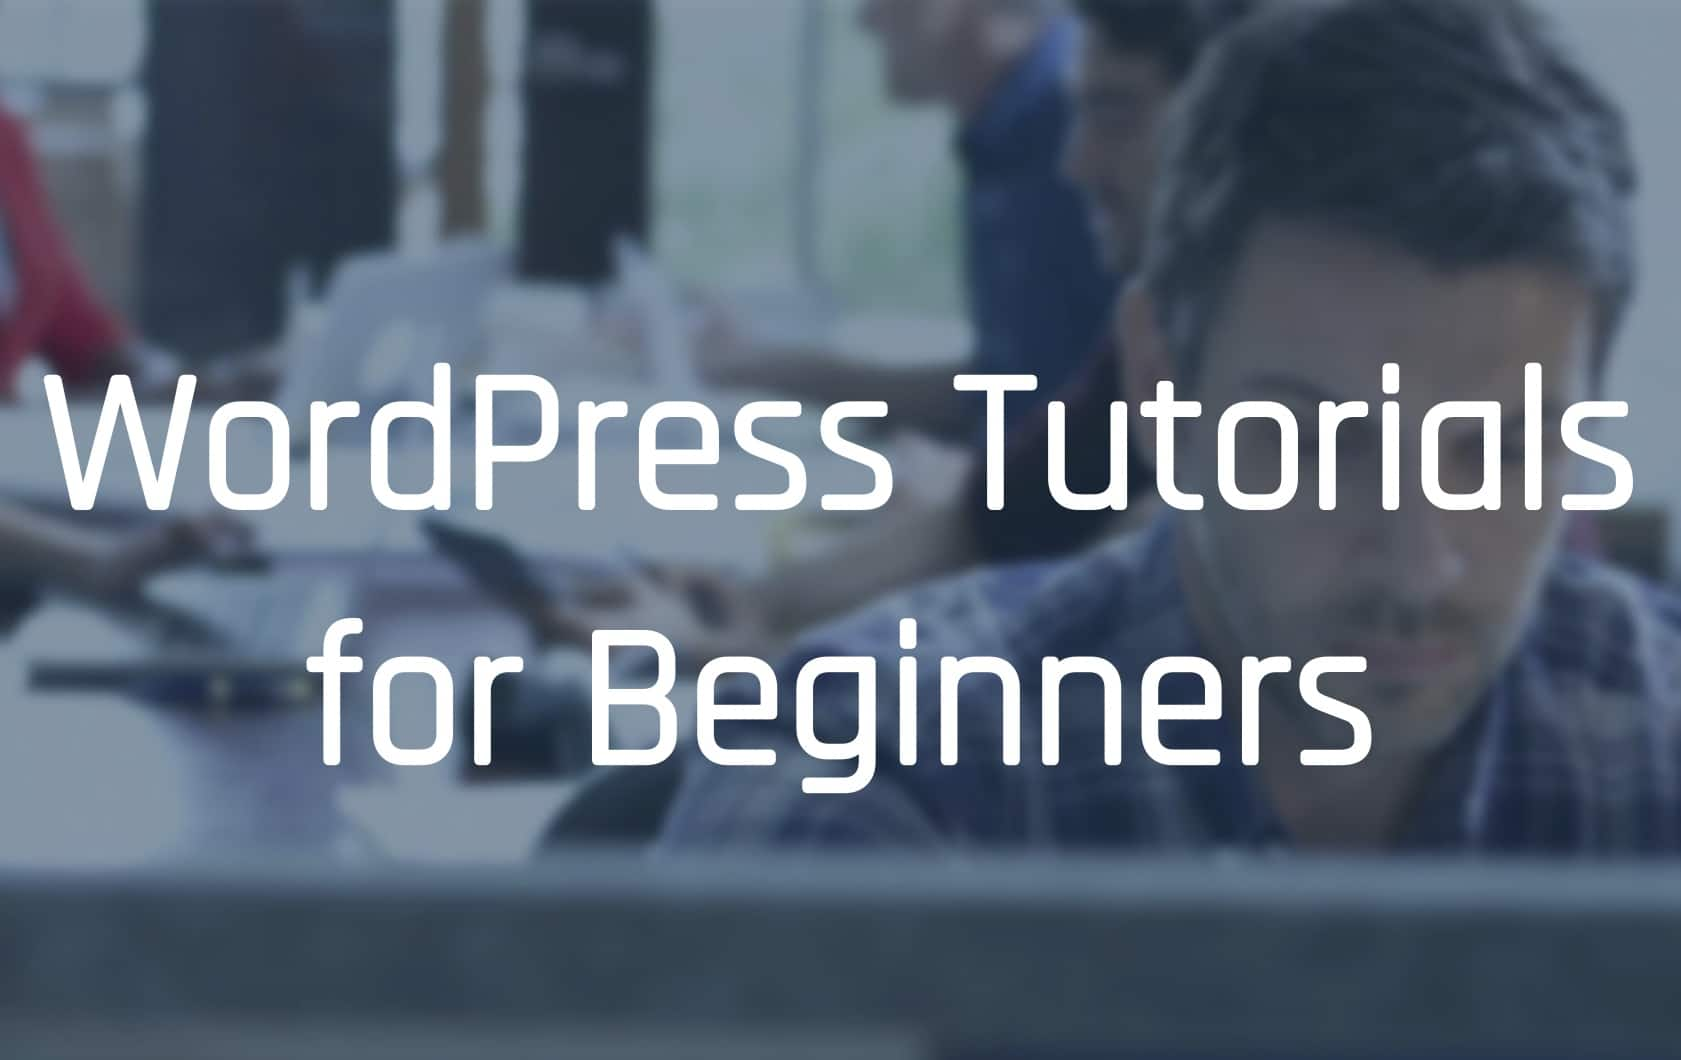 WordPress Tutorial for Beginners